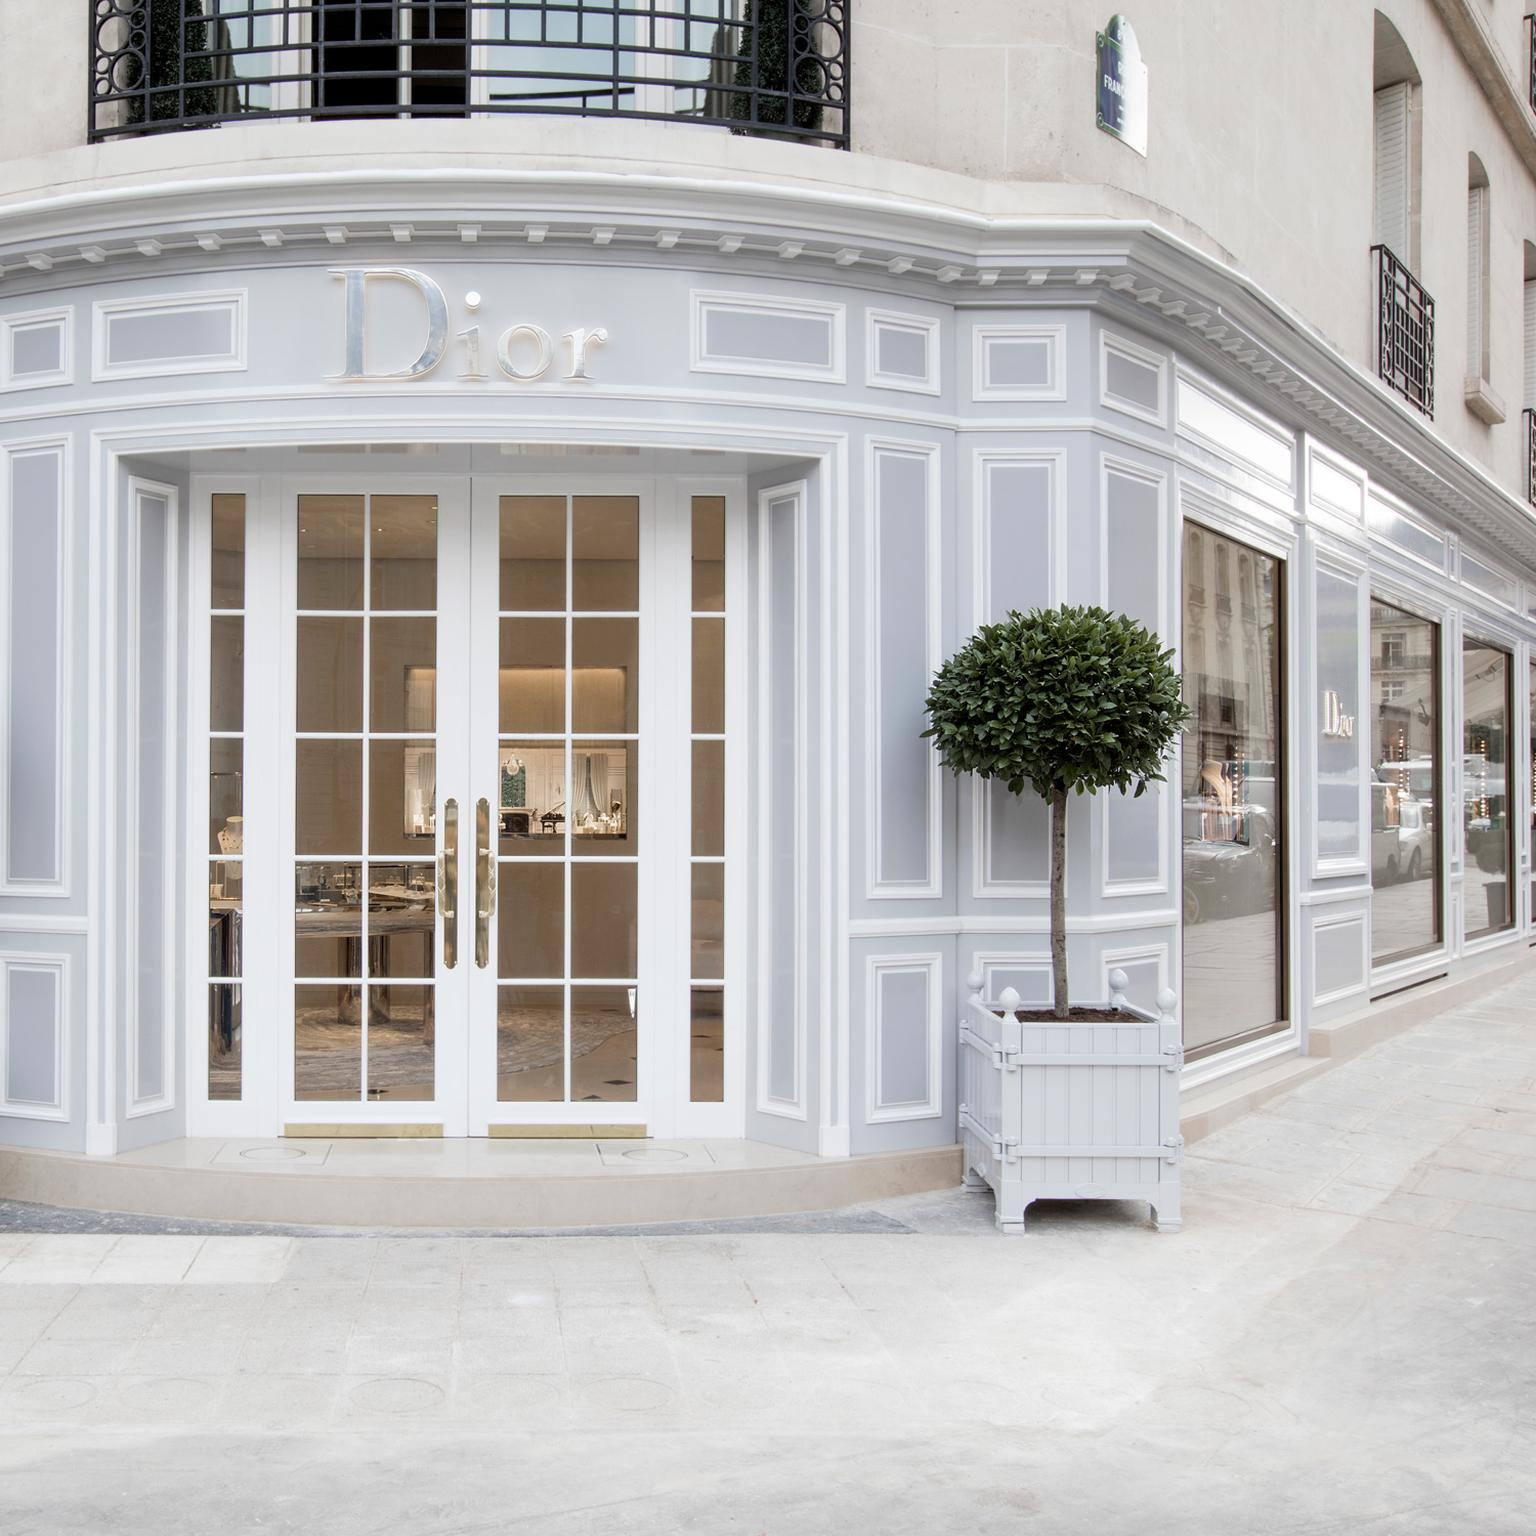 Dior's new Fine Jewellery and Timepieces boutique on avenue Montaigne, Paris